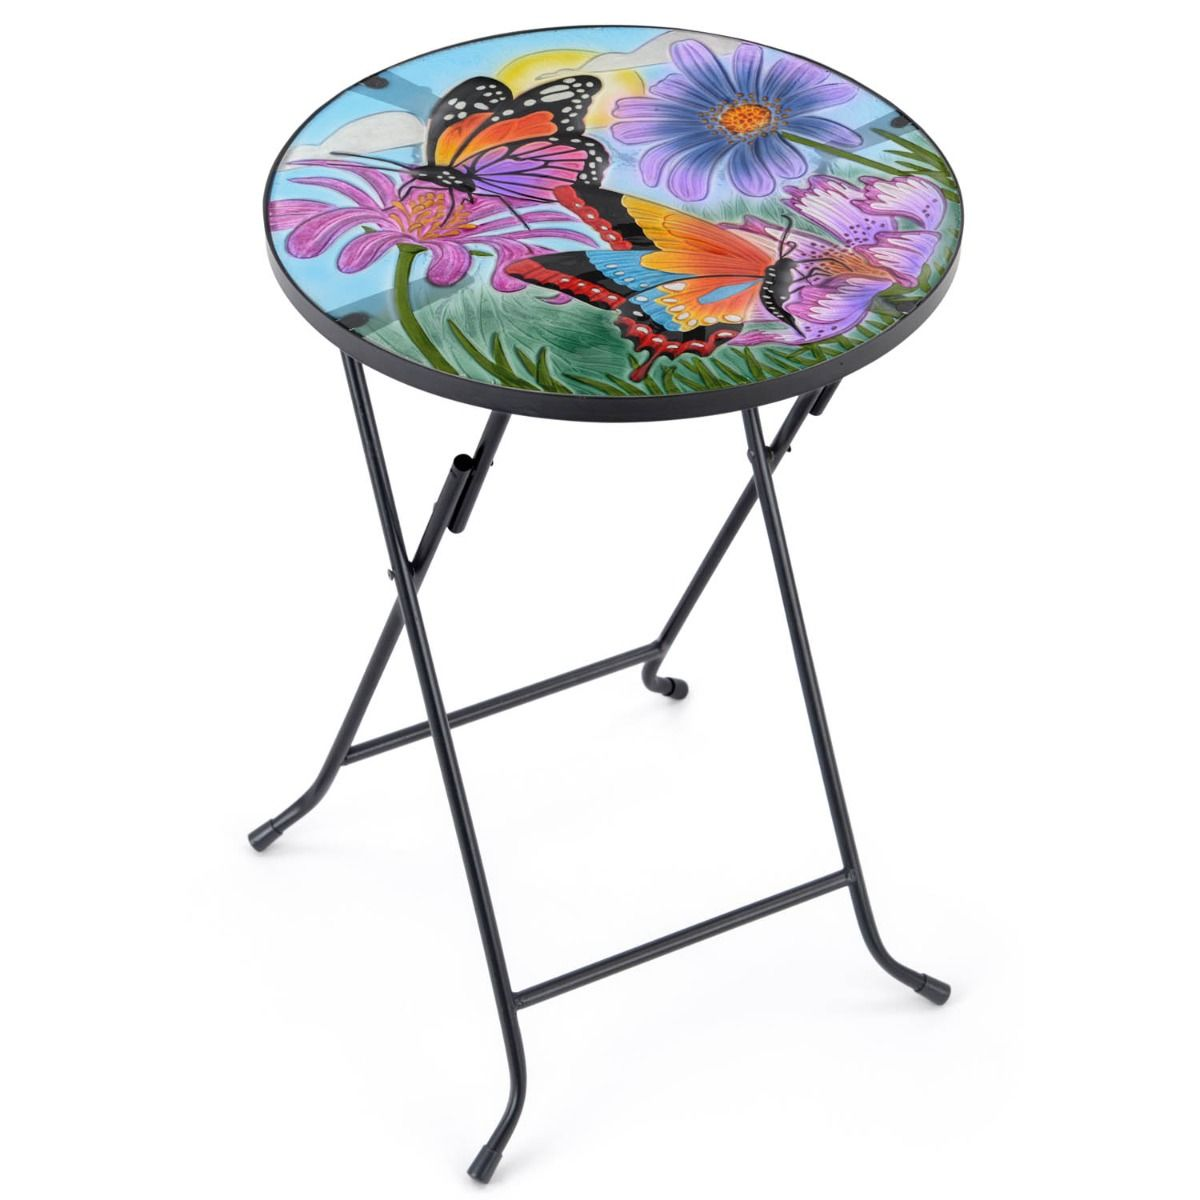 Christow Butterfly Glass Top Folding Patio Table